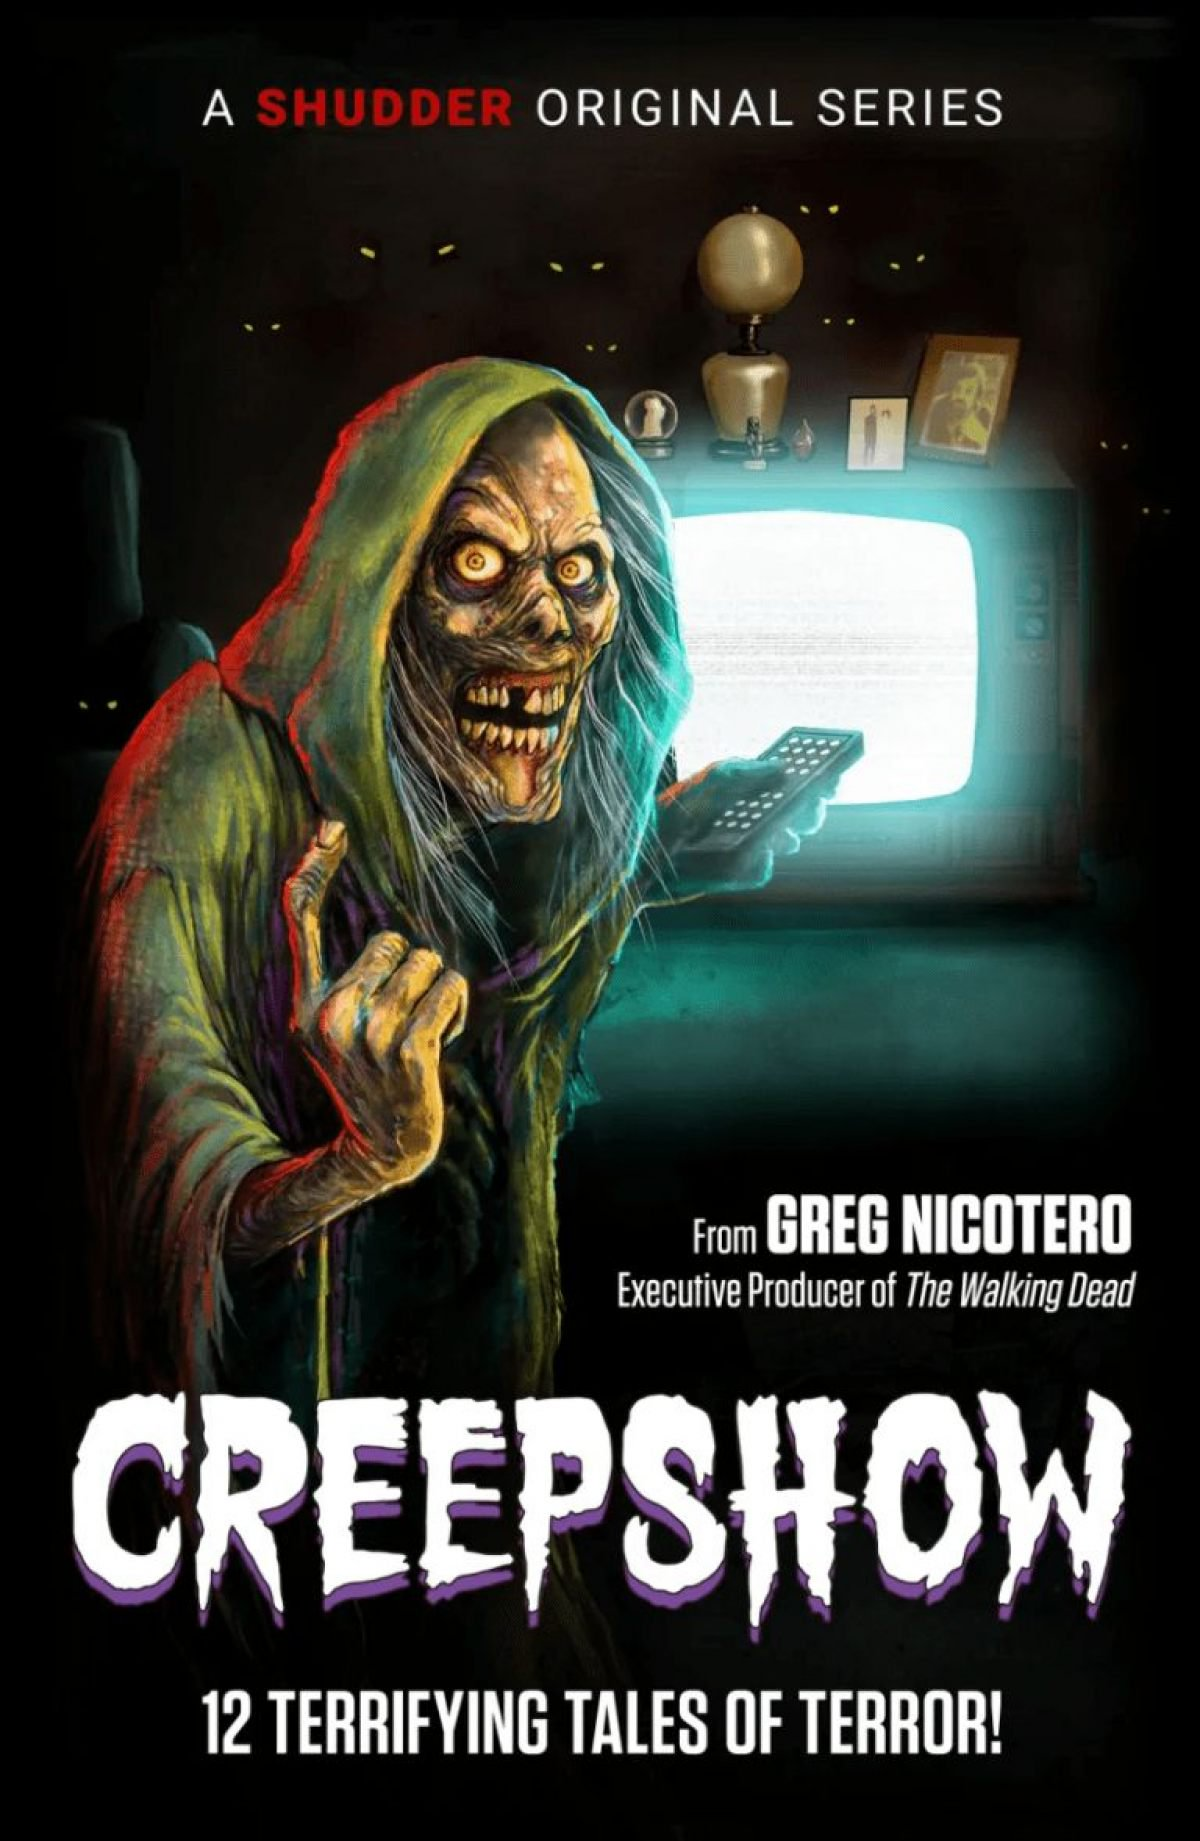 'Creepshow' key art. [Shudder]